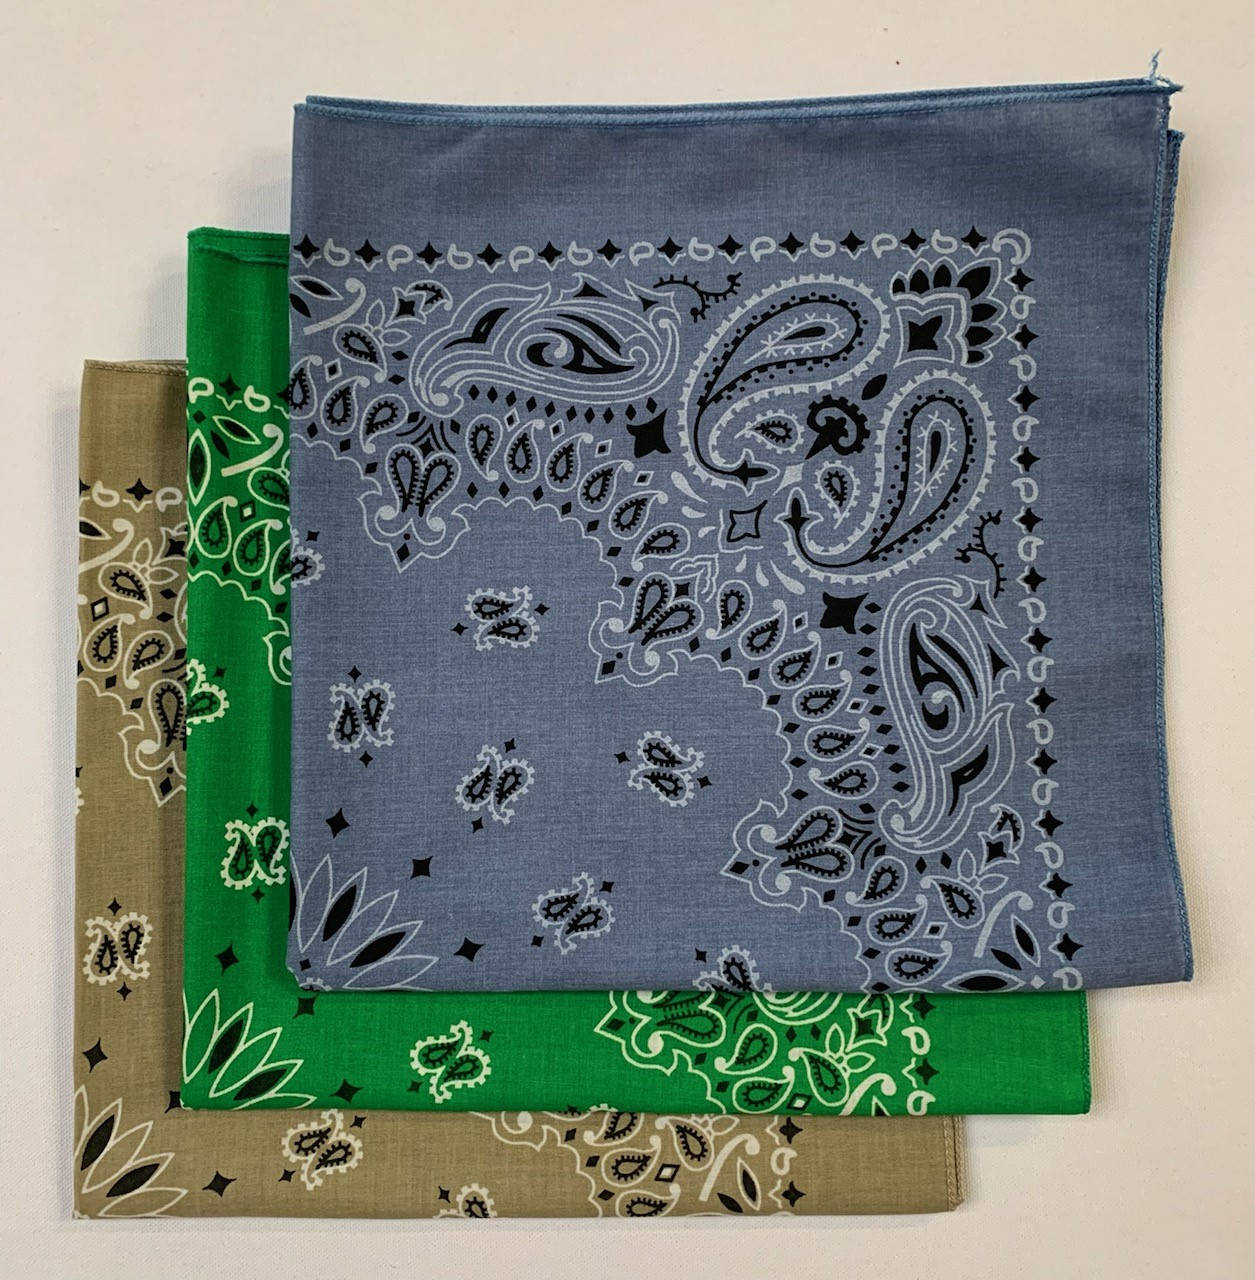 Chambray, Kelly, Beige USA Made Paisley Bandanas (3 Pk) 22""